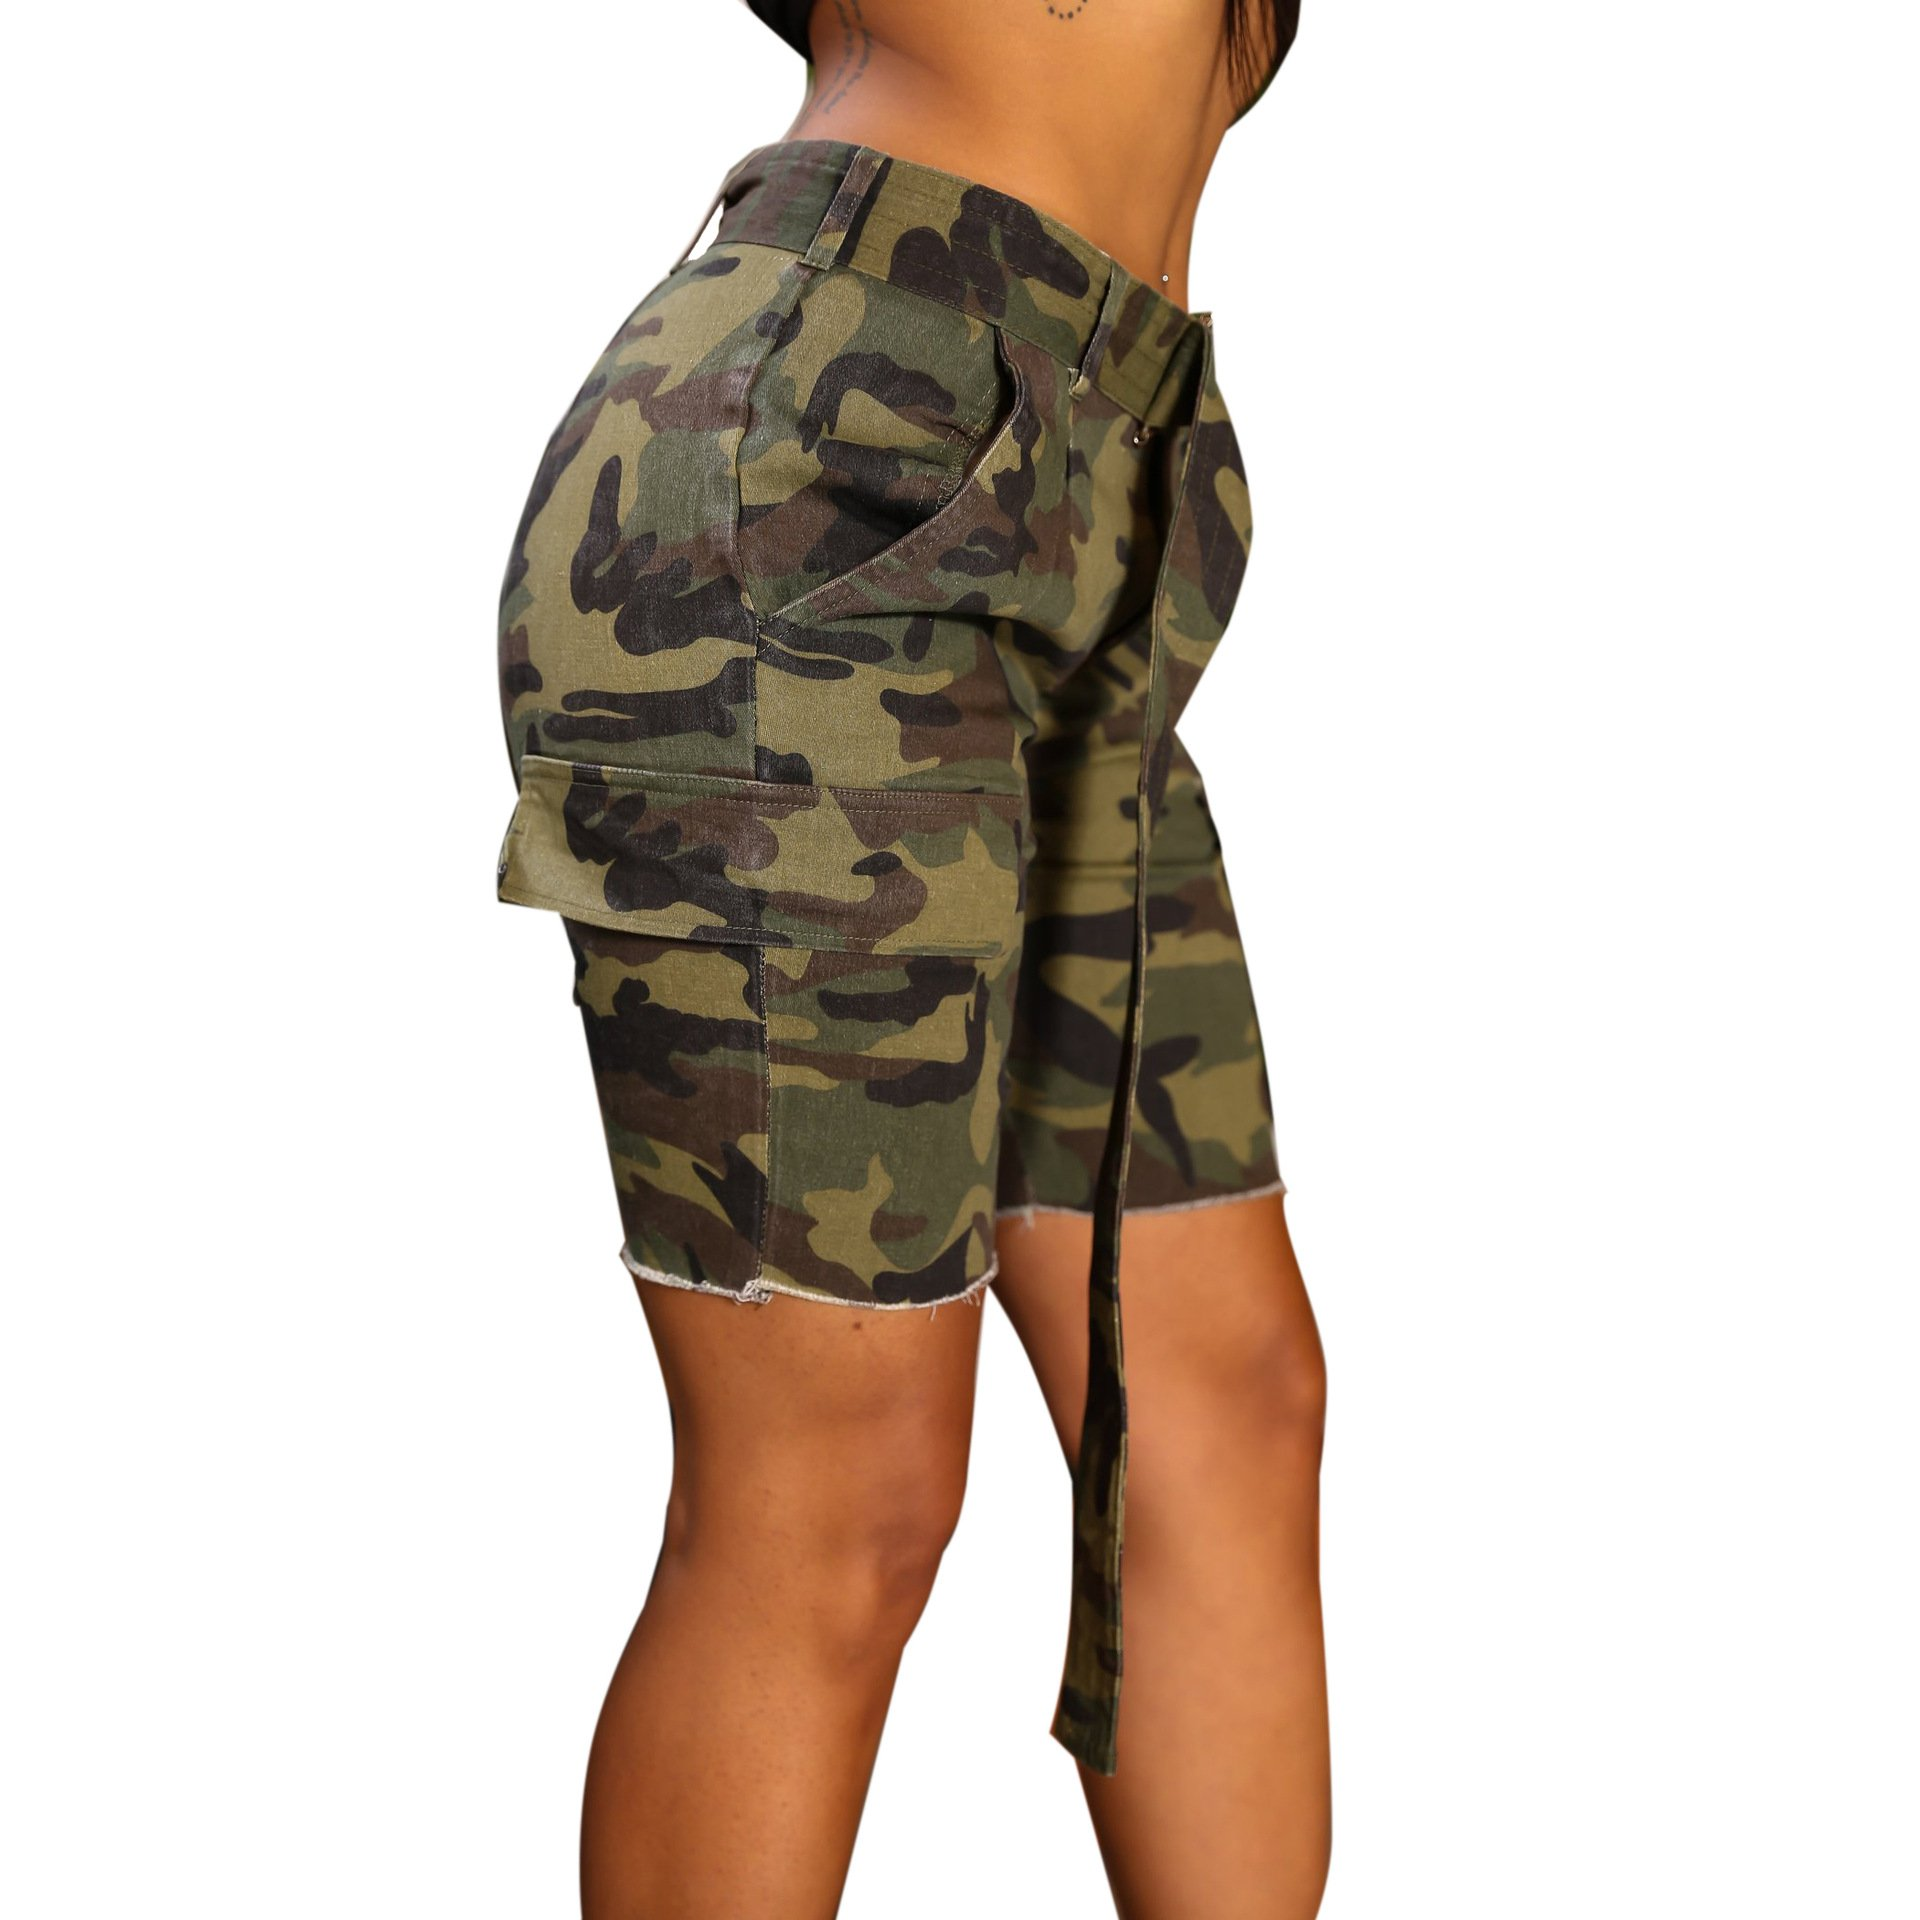 PINLI Camouflage Womens Denim Shorts Sexy Casual Summer Stretch Plus Size high Waisted Beach Jeans Shorts Capri (Camo L) by PINLI (Image #4)